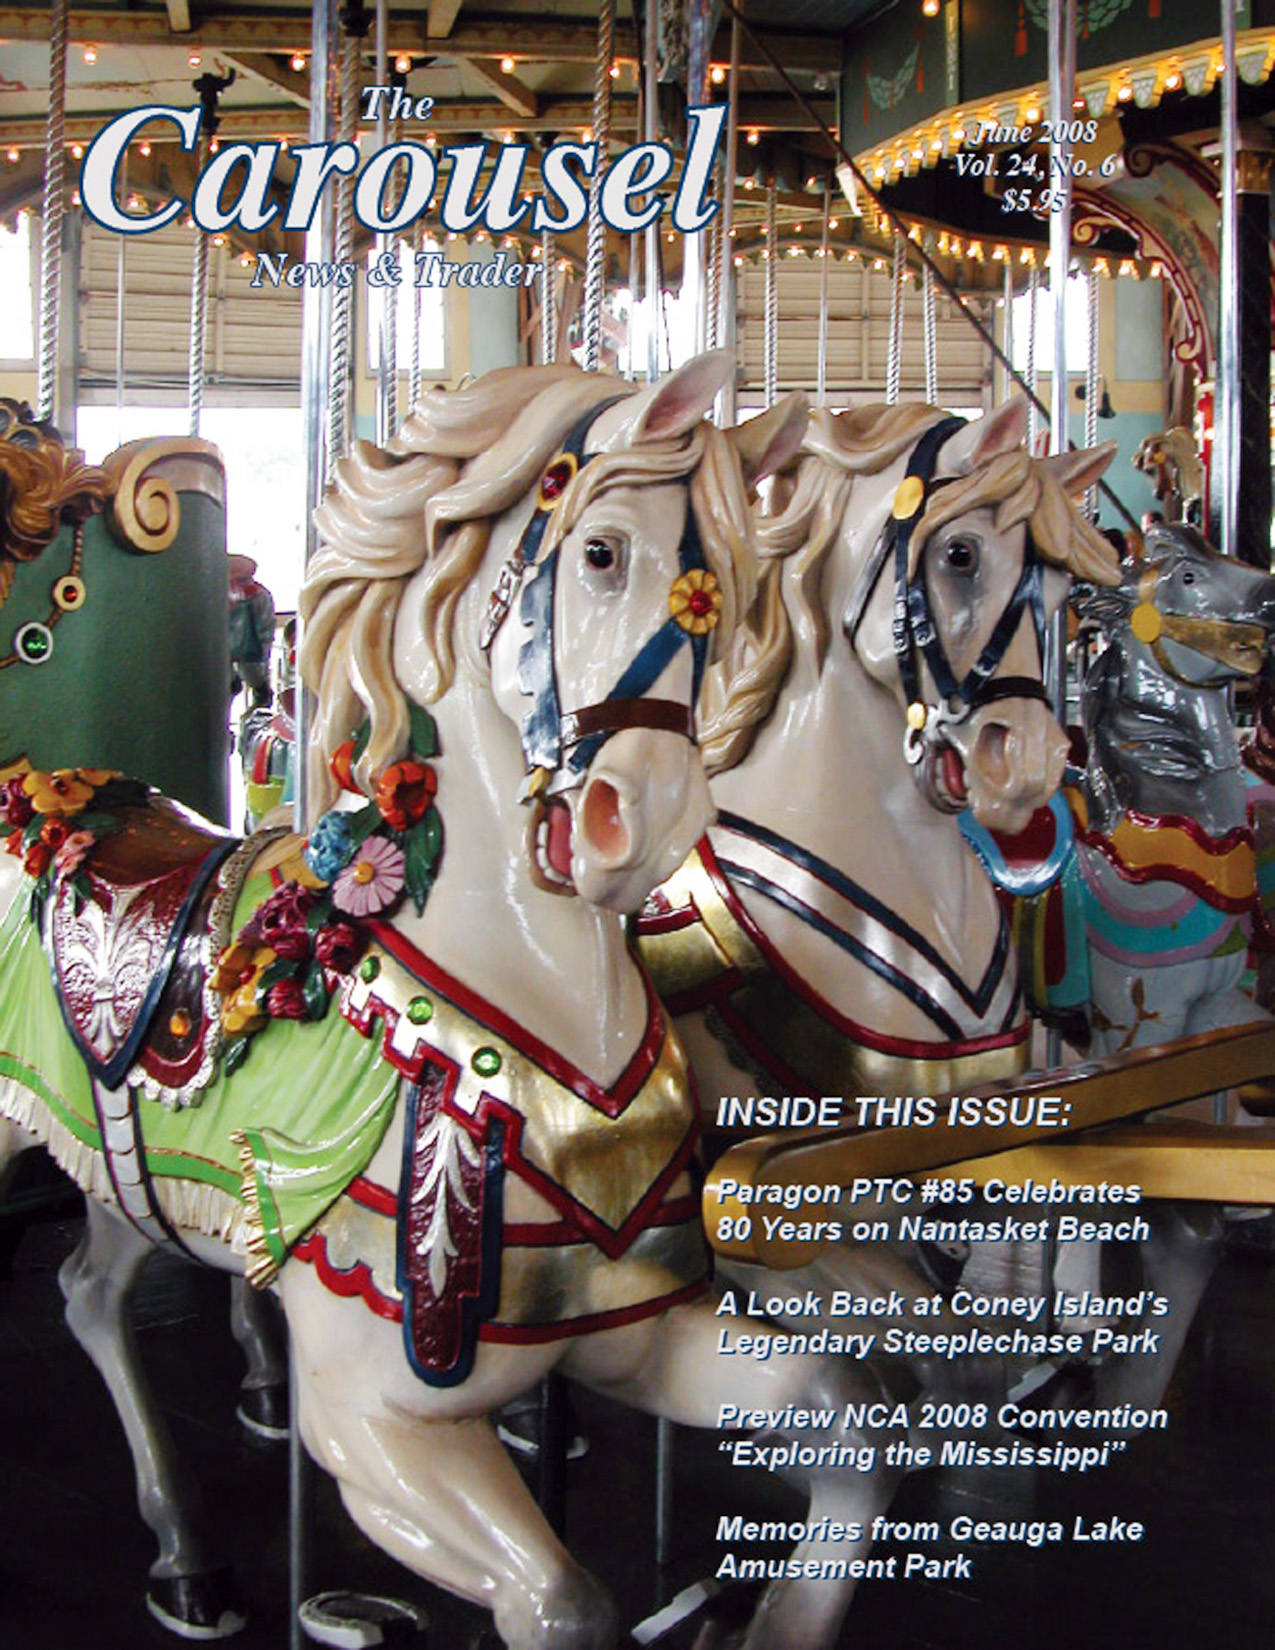 Carousel-news-cover-6-PTC-85-Paragon-carousel-June-2008